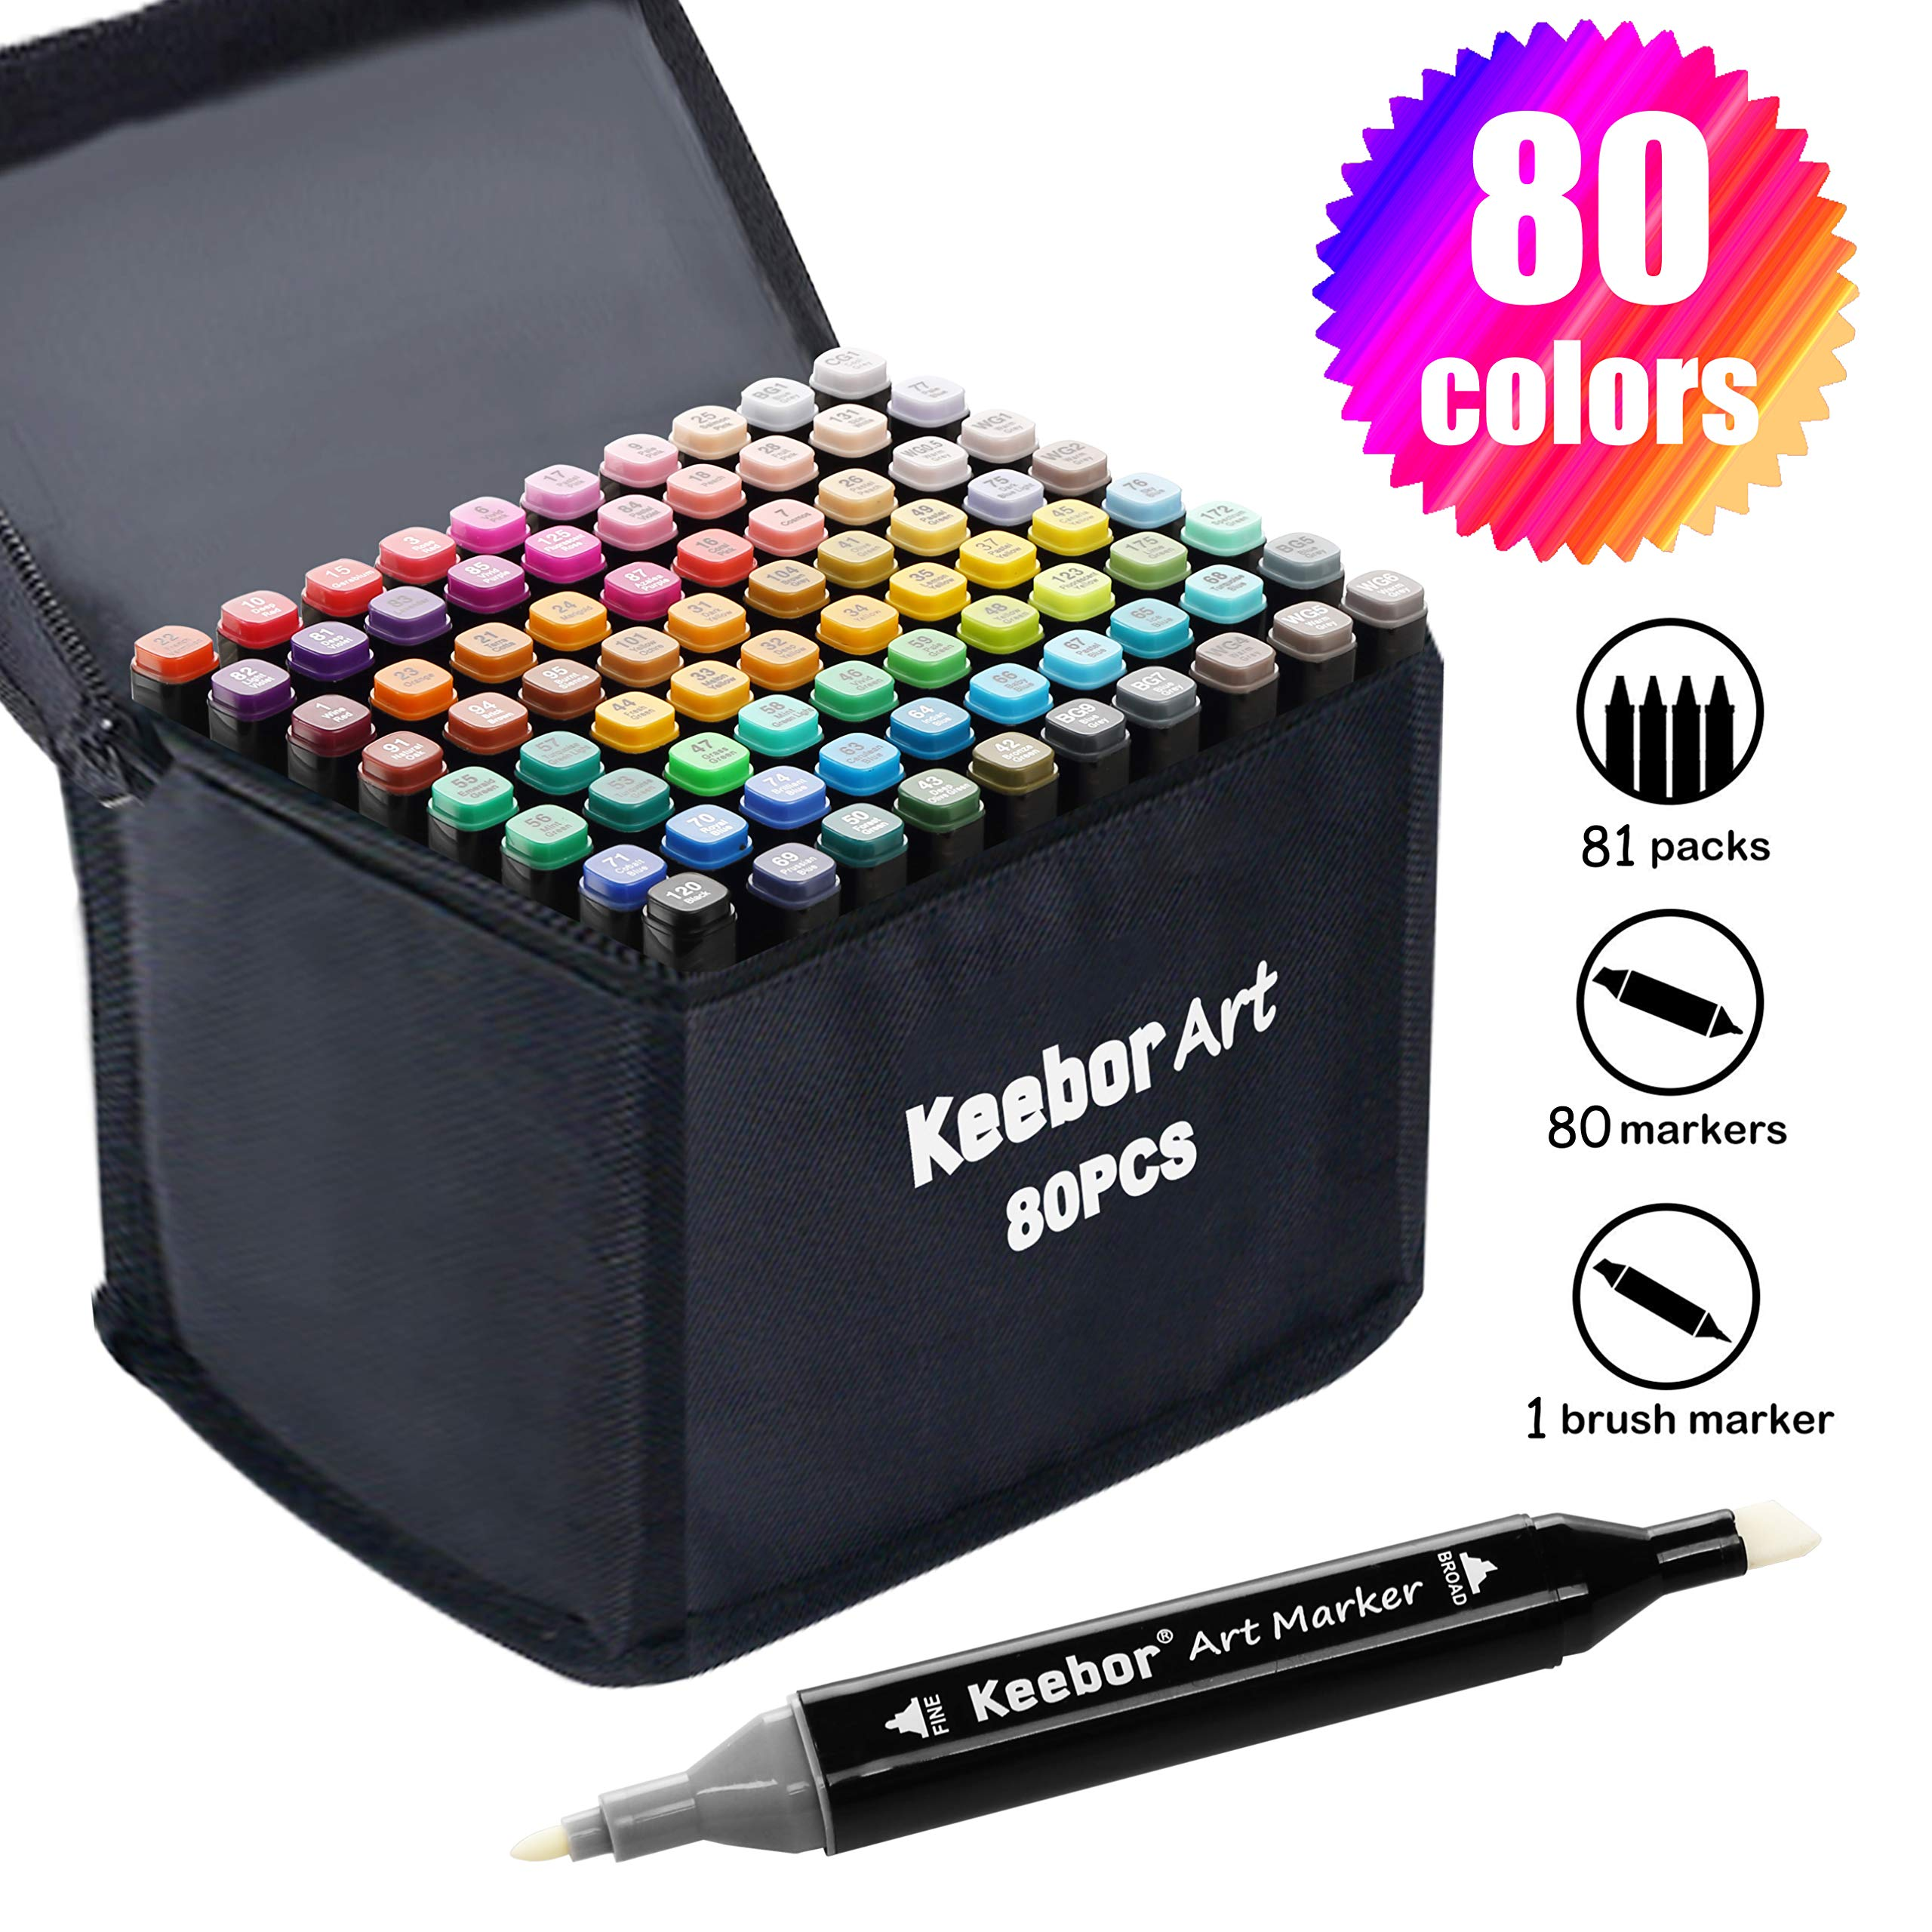 Keebor Advanced 80+1 Colors Dual Tip Alcohol-Based Art Markers, Plus 1 Blender Marker with Thick Packing